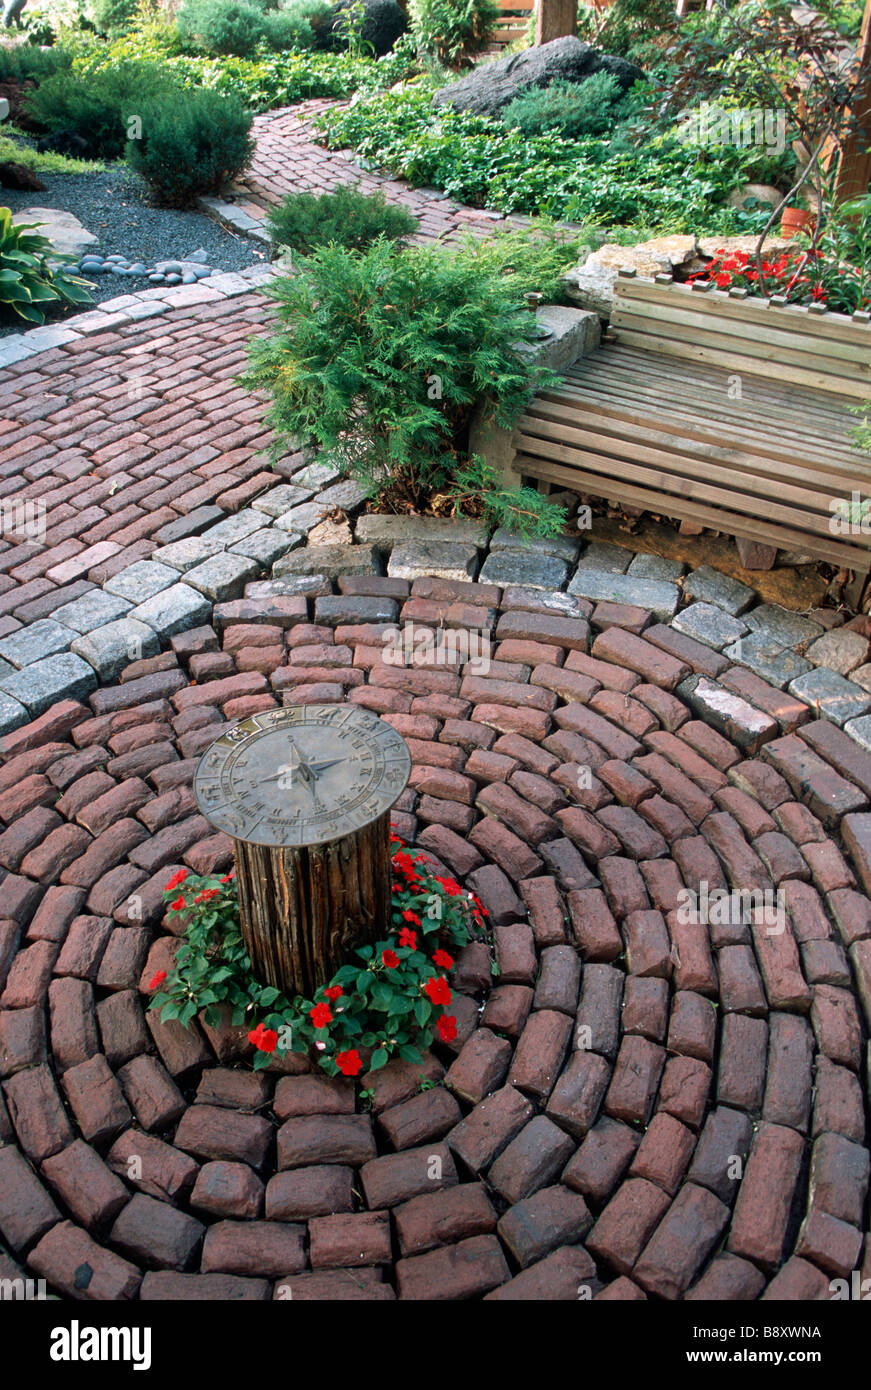 SALVAGED STONE STREET PAVERS USED IN MINNEAPOLIS, MINNESOTA GARDEN WITH  SUNDIAL. SUMMER.